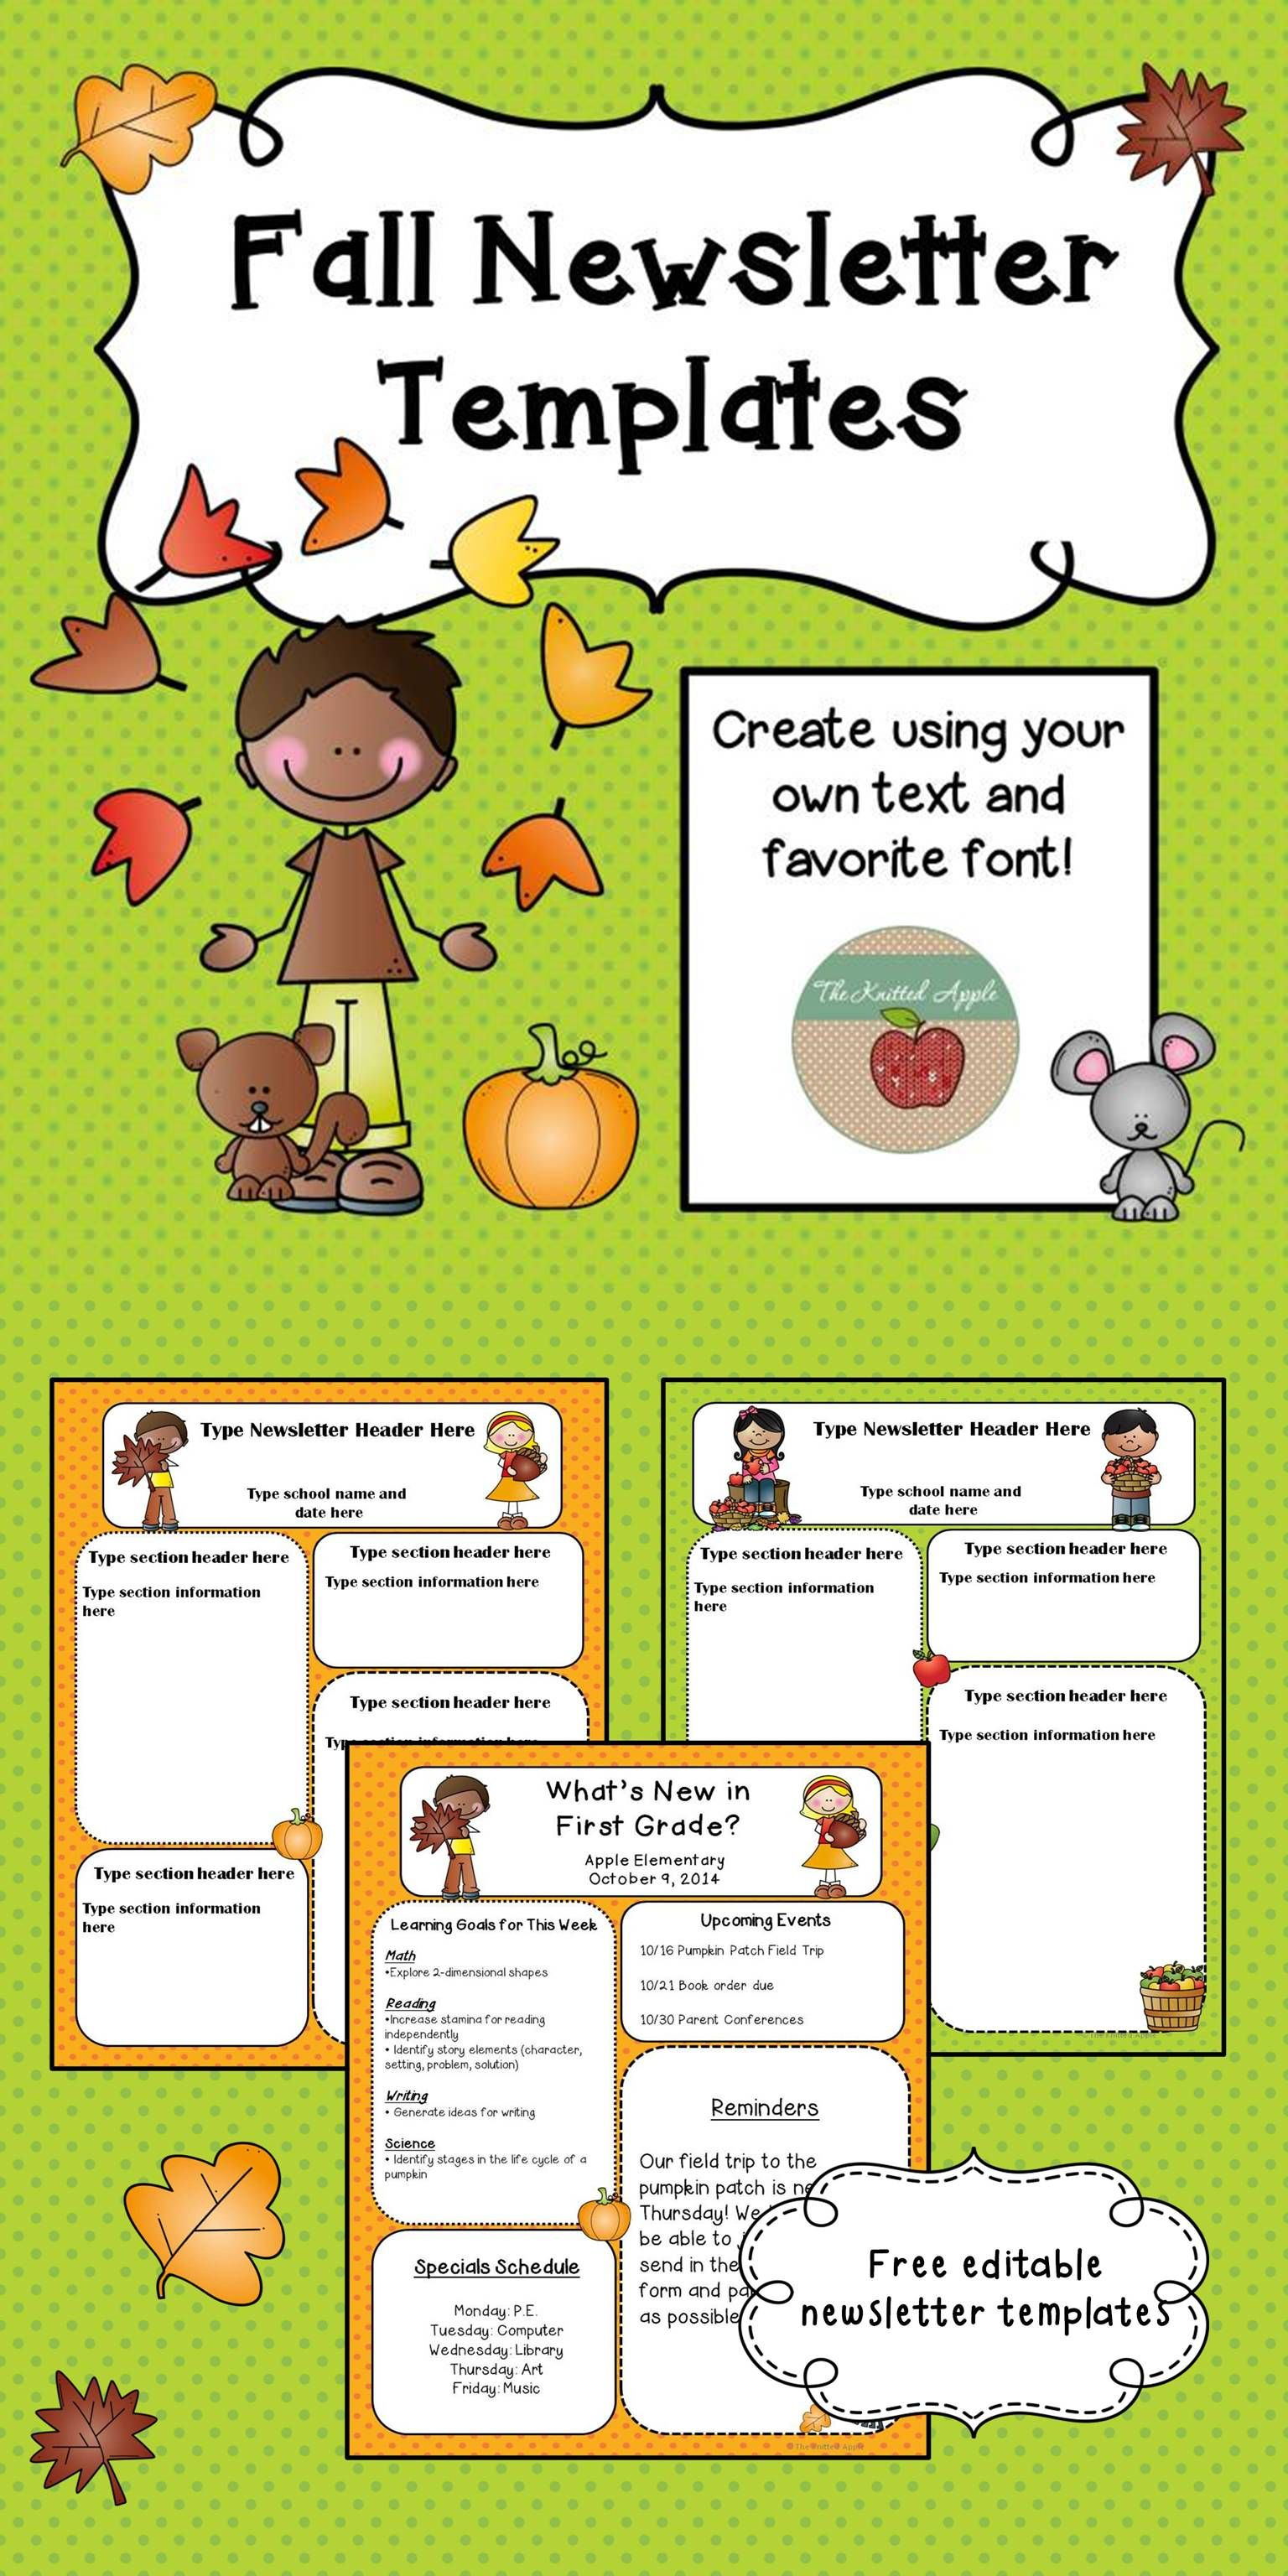 Fall Newsletter Templates Freebie